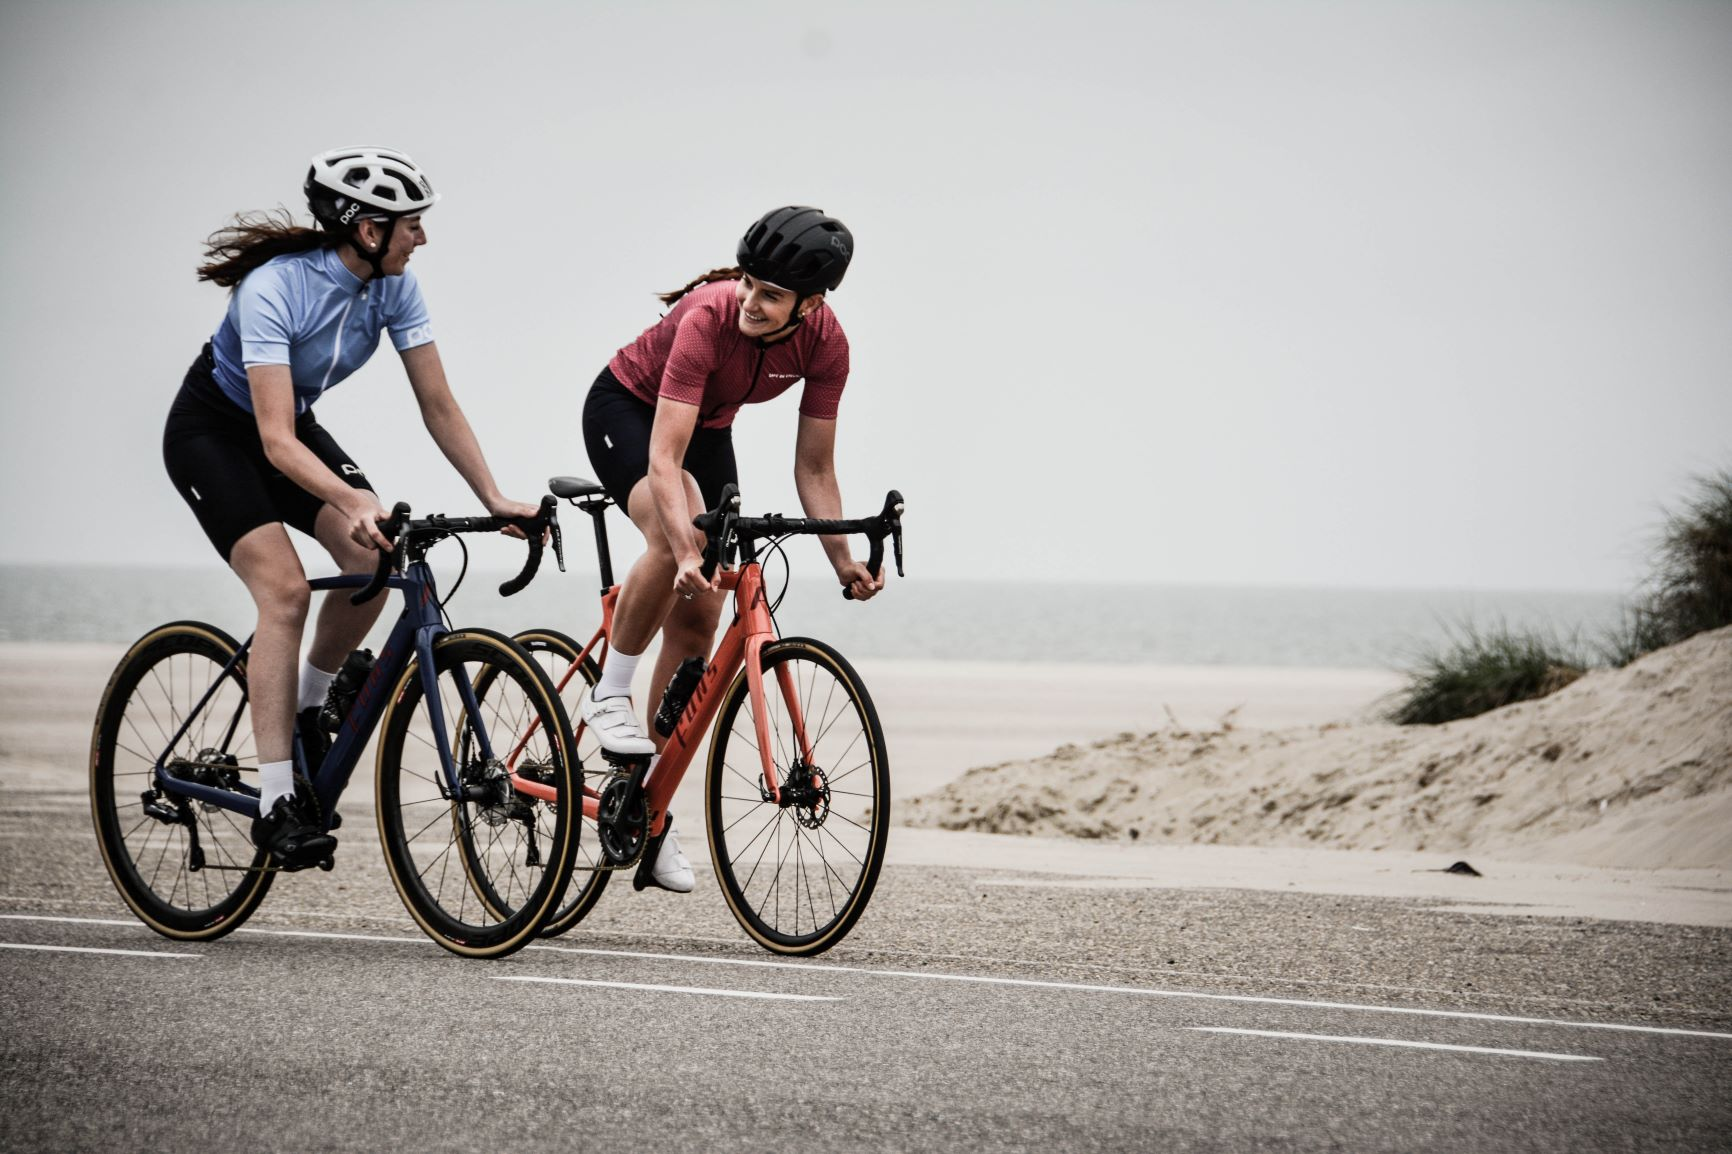 An in-depth review of the best gifts for cyclists available in 2019.